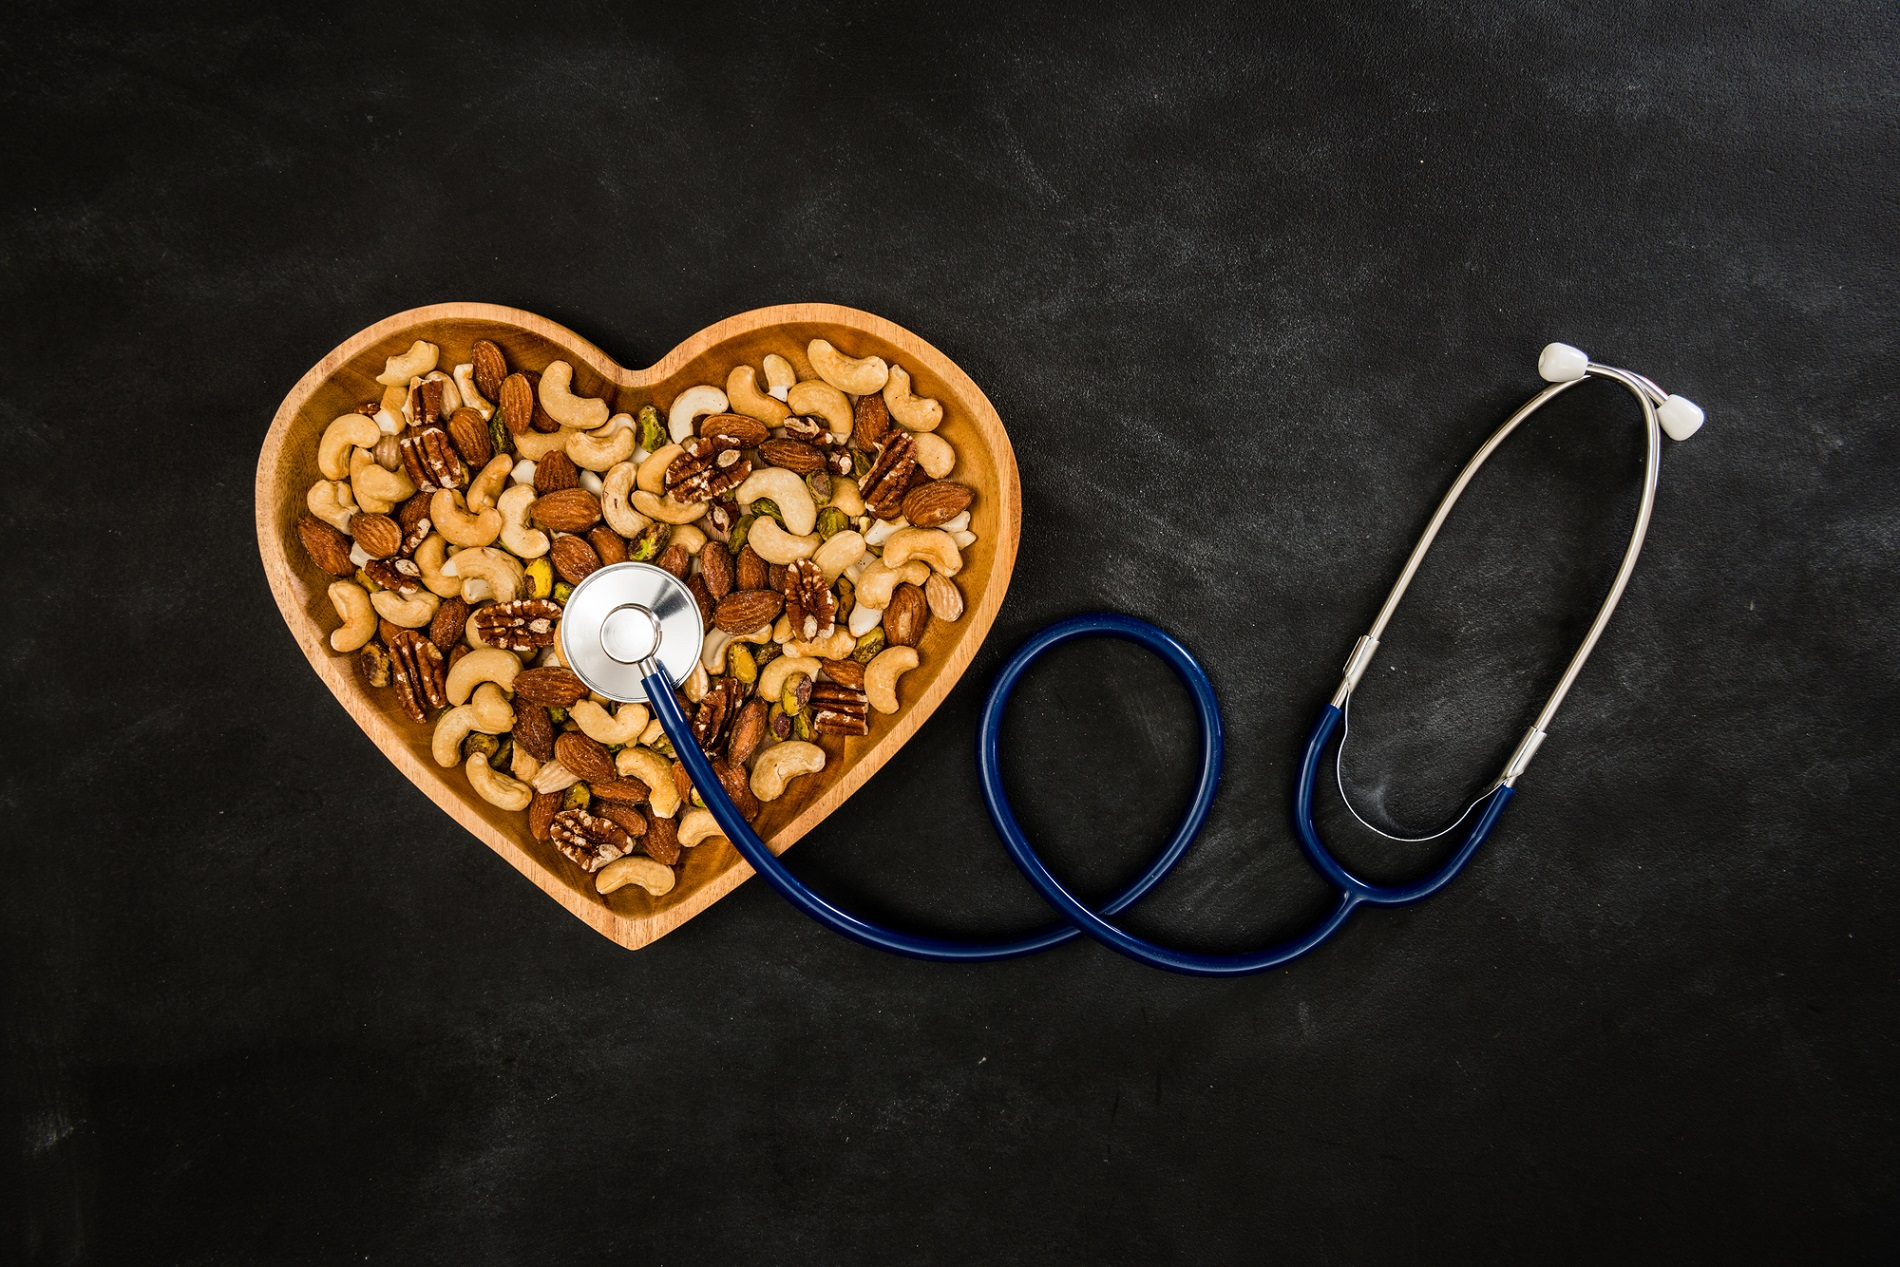 many colorful fresh nuts in love heart shaped wooden vintage plate with stethoscope showing healthcare diet concept on black chalkboard background.